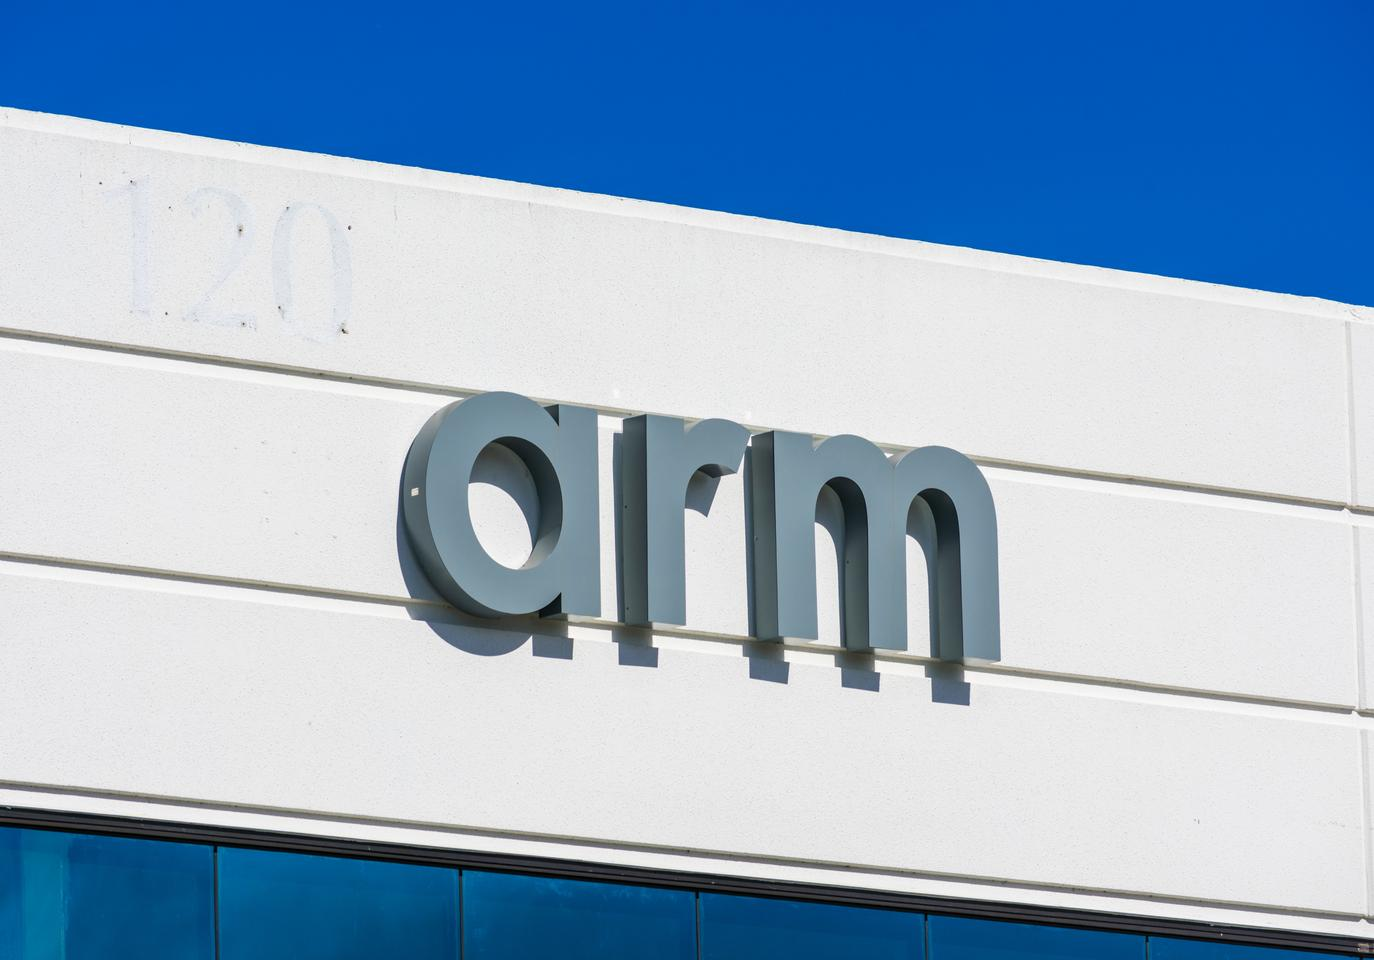 If Arm's acquisition by Nvidia goes ahead as planned, the company's R&D will be expanded to include a new AI research center